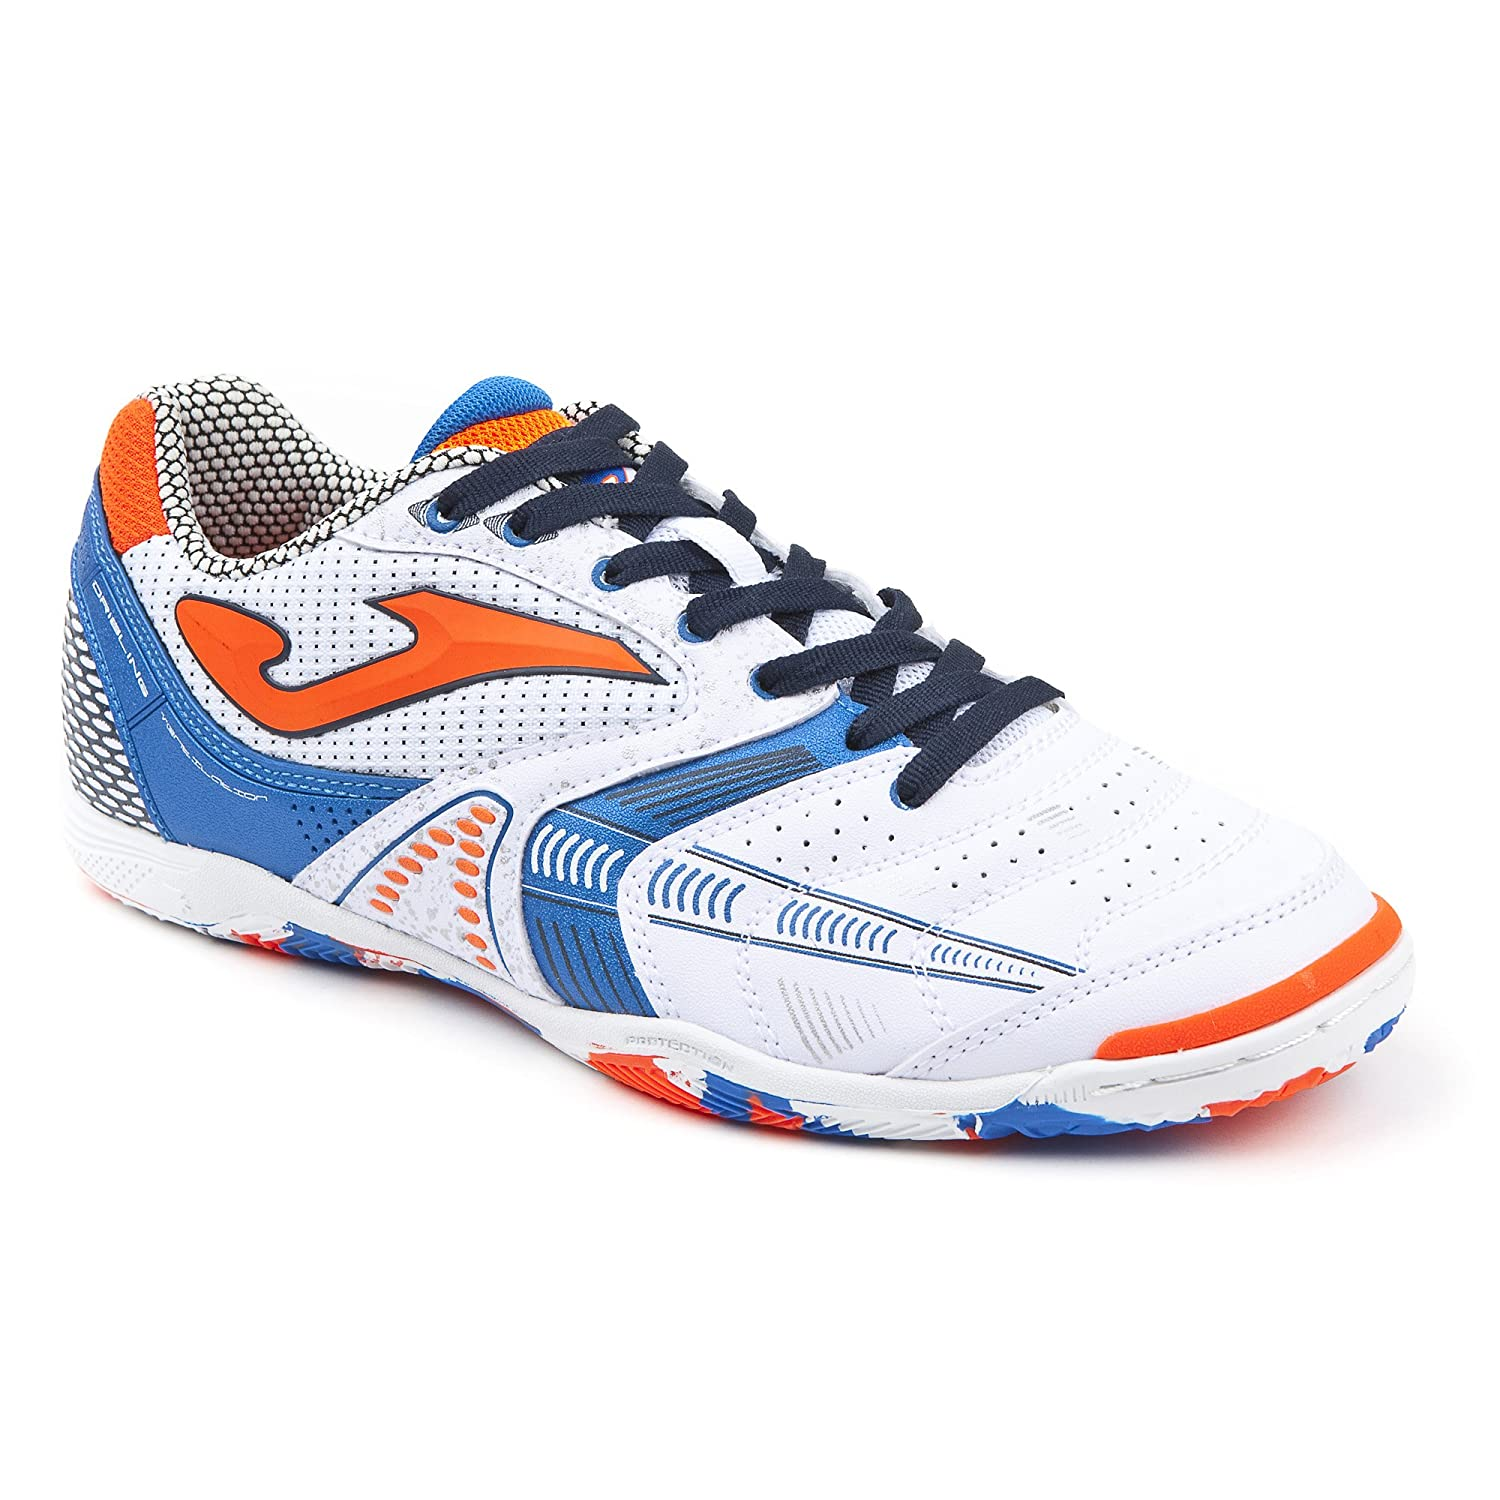 Joma Dribling 802 White Indoor – Chaussures Futsal Homme – DRIS.802.En Sportime2.0